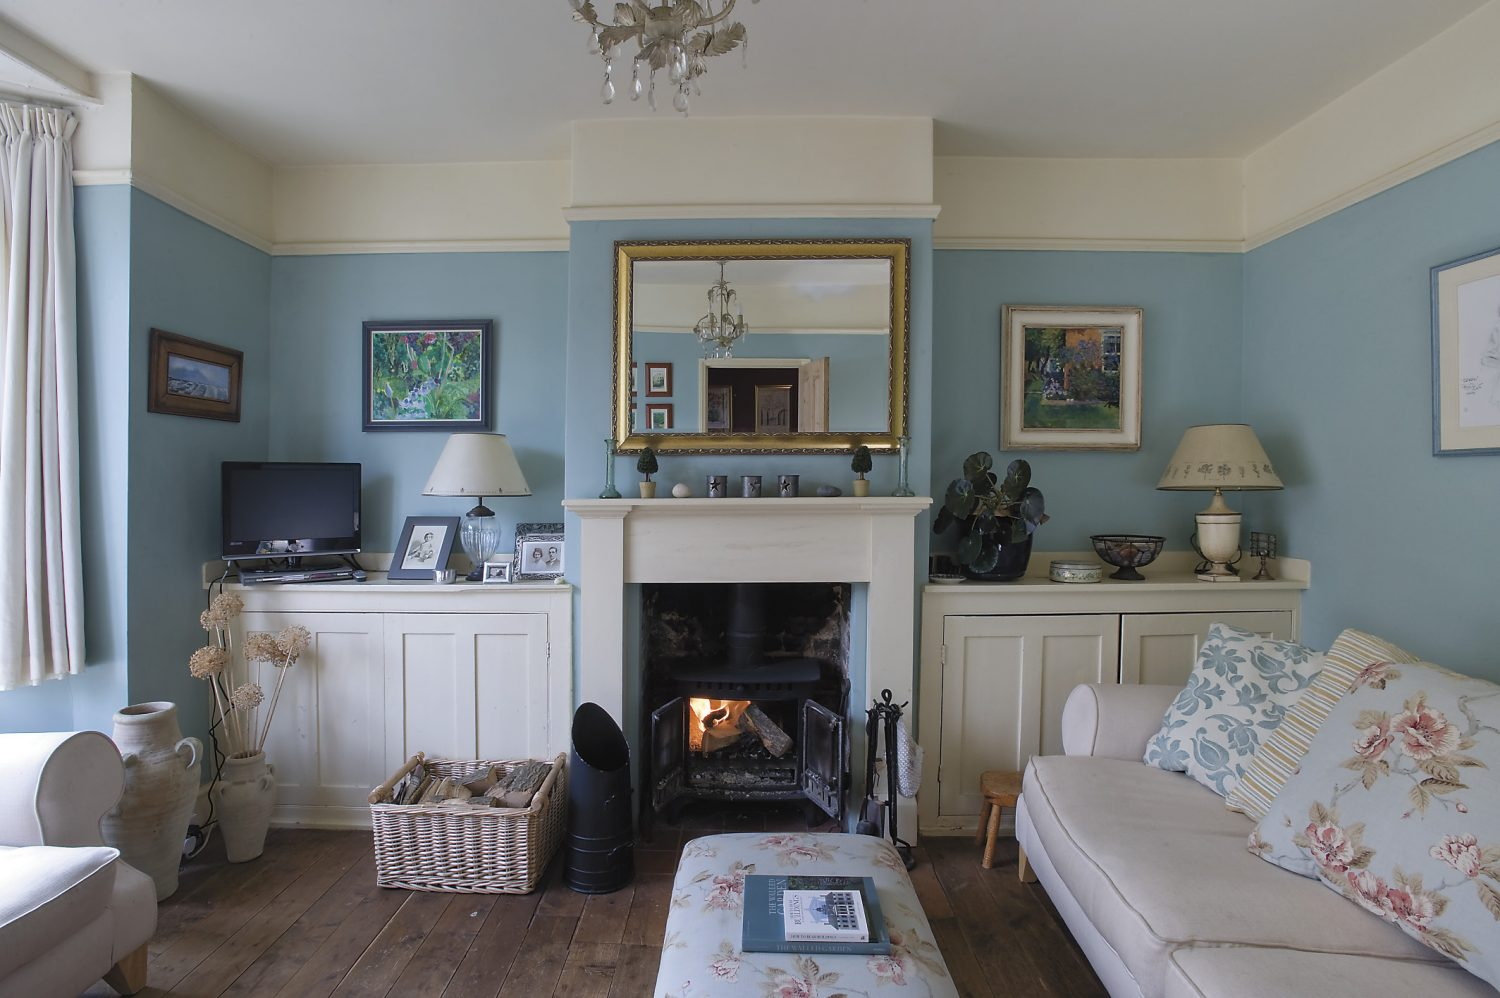 the duck-egg blue drawing room, at the front of the house, was added on in the Georgian period. The painting on the right-hand side of the fireplace is by Frittenden artist Anne-Catherine Phillips